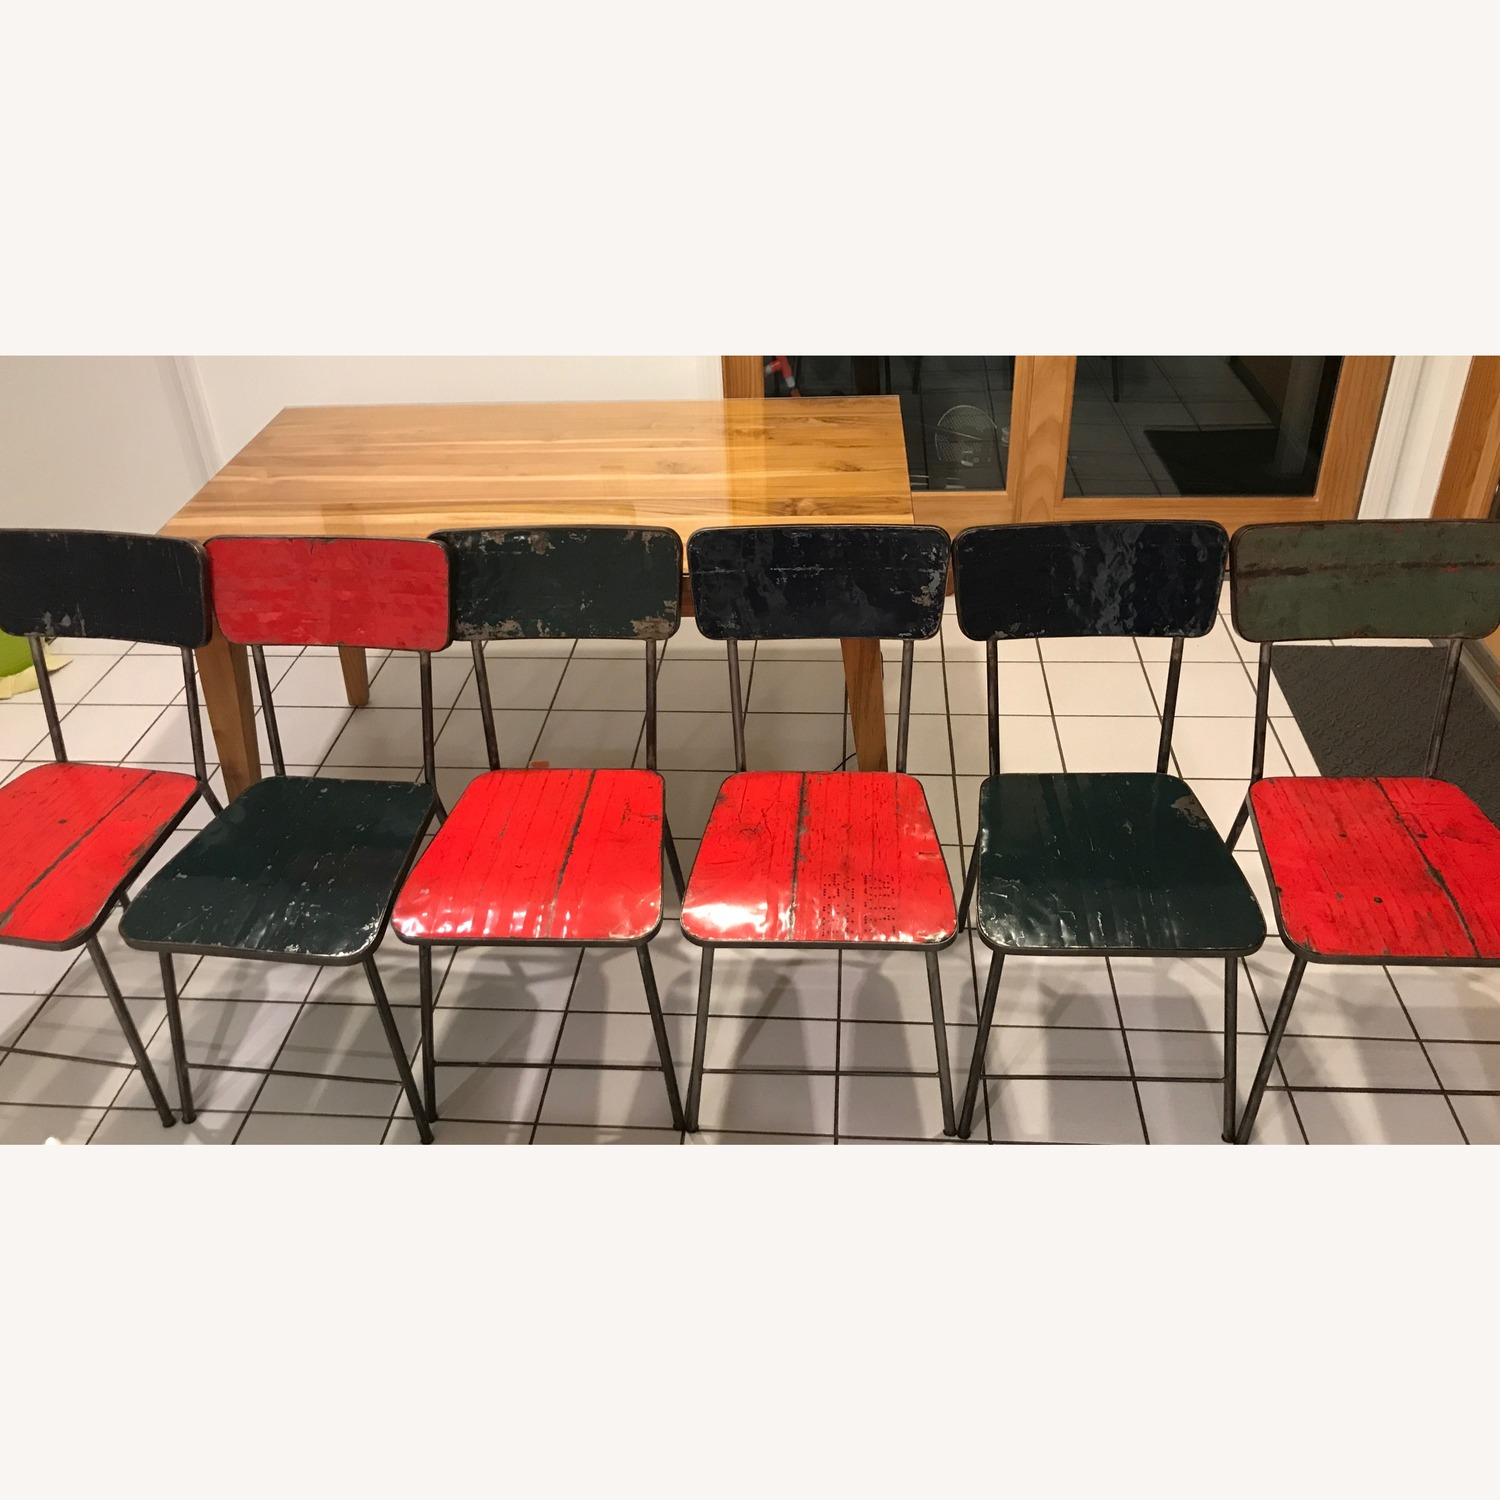 From The Source Pele Recycled Oil Drums Dining Chairs - image-2